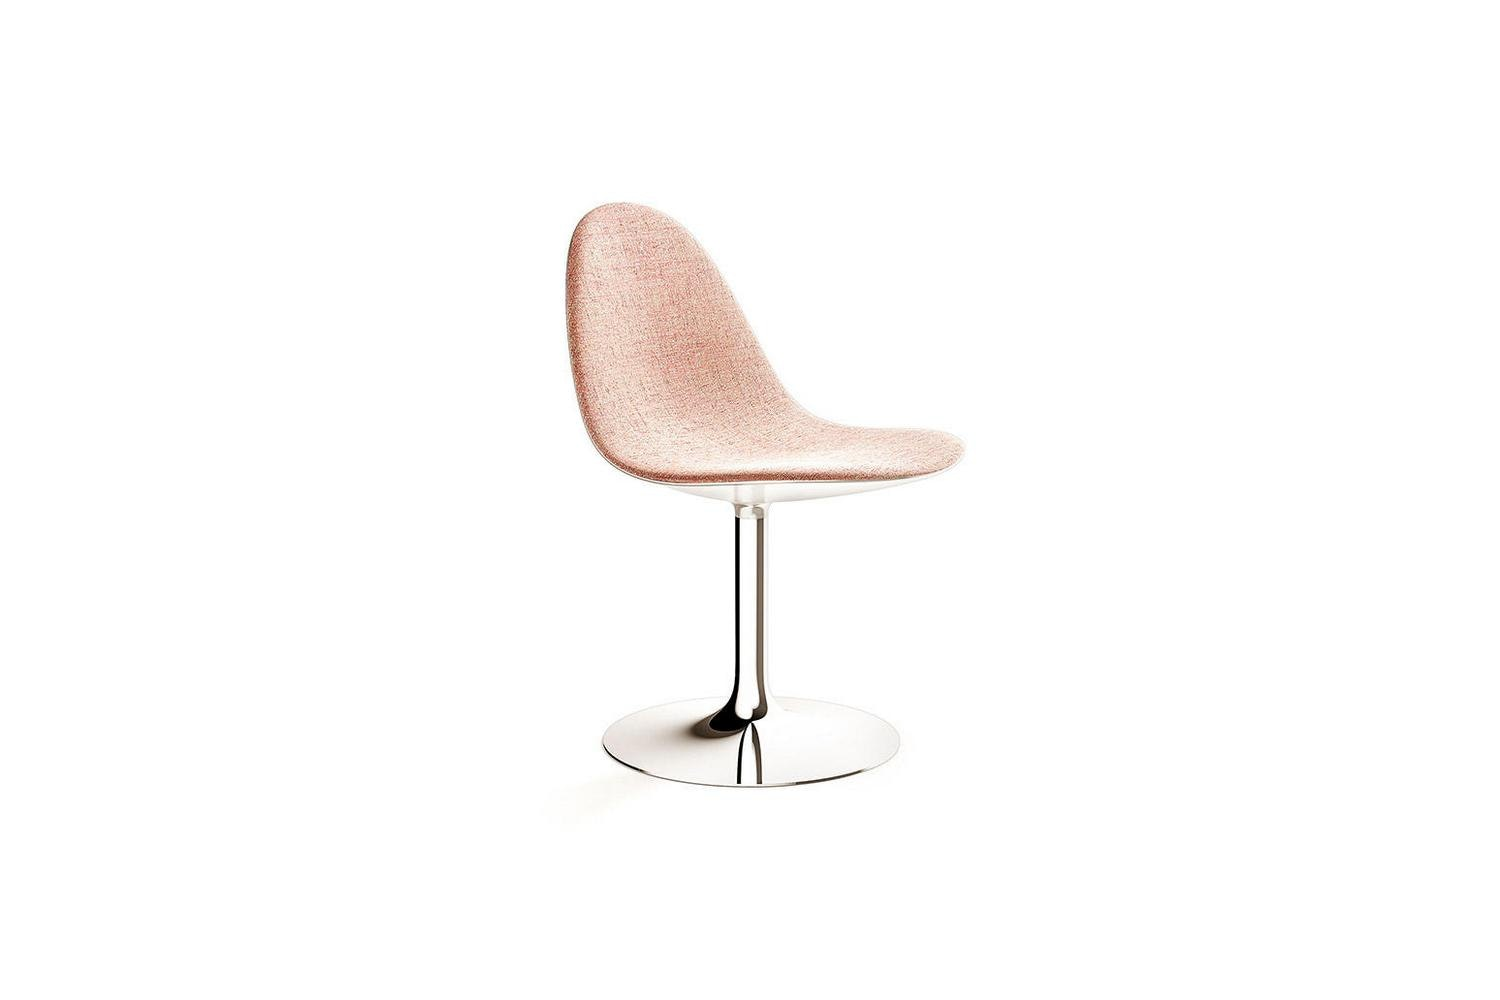 245/247 Caprice Chair by Philippe Starck for Cassina